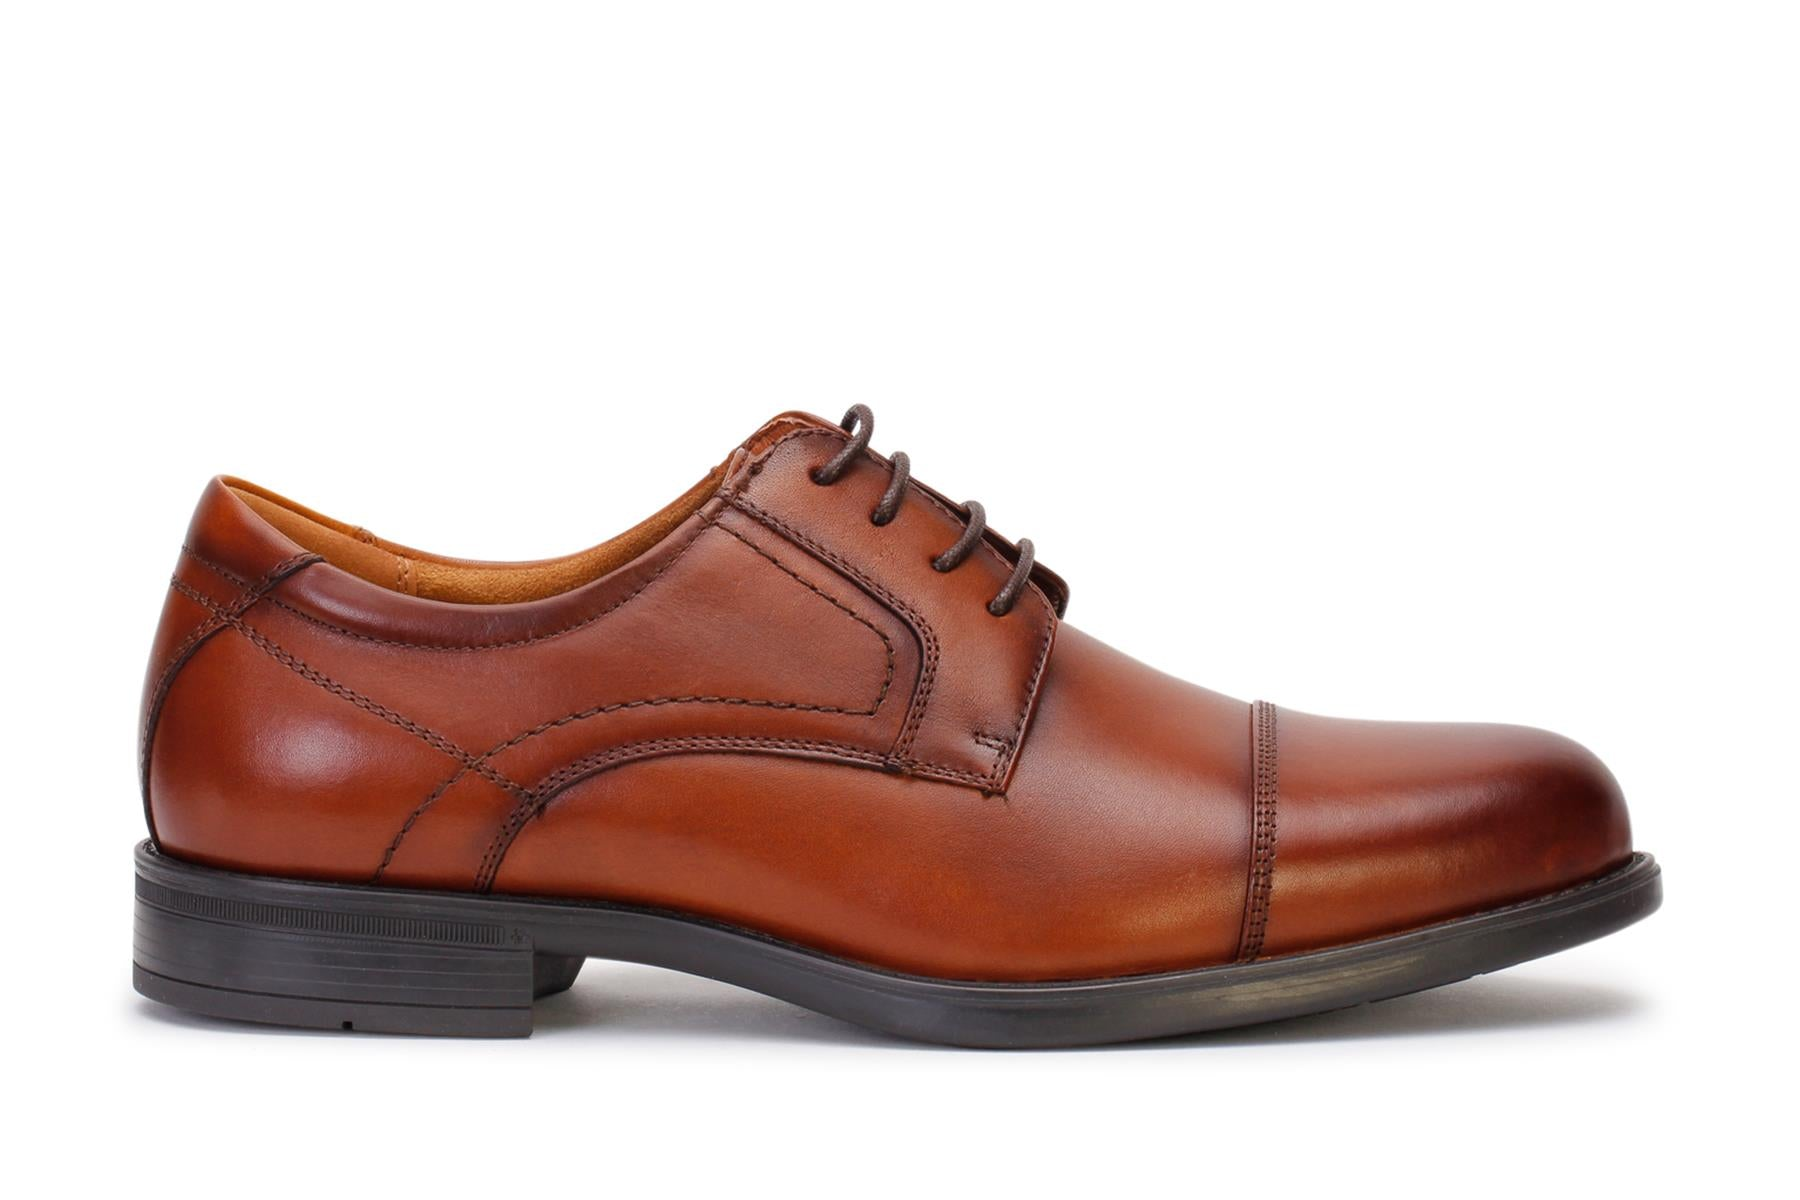 florsheim-mens-dress-shoes-midtown-cap-toe-oxford-cognac-leather-main